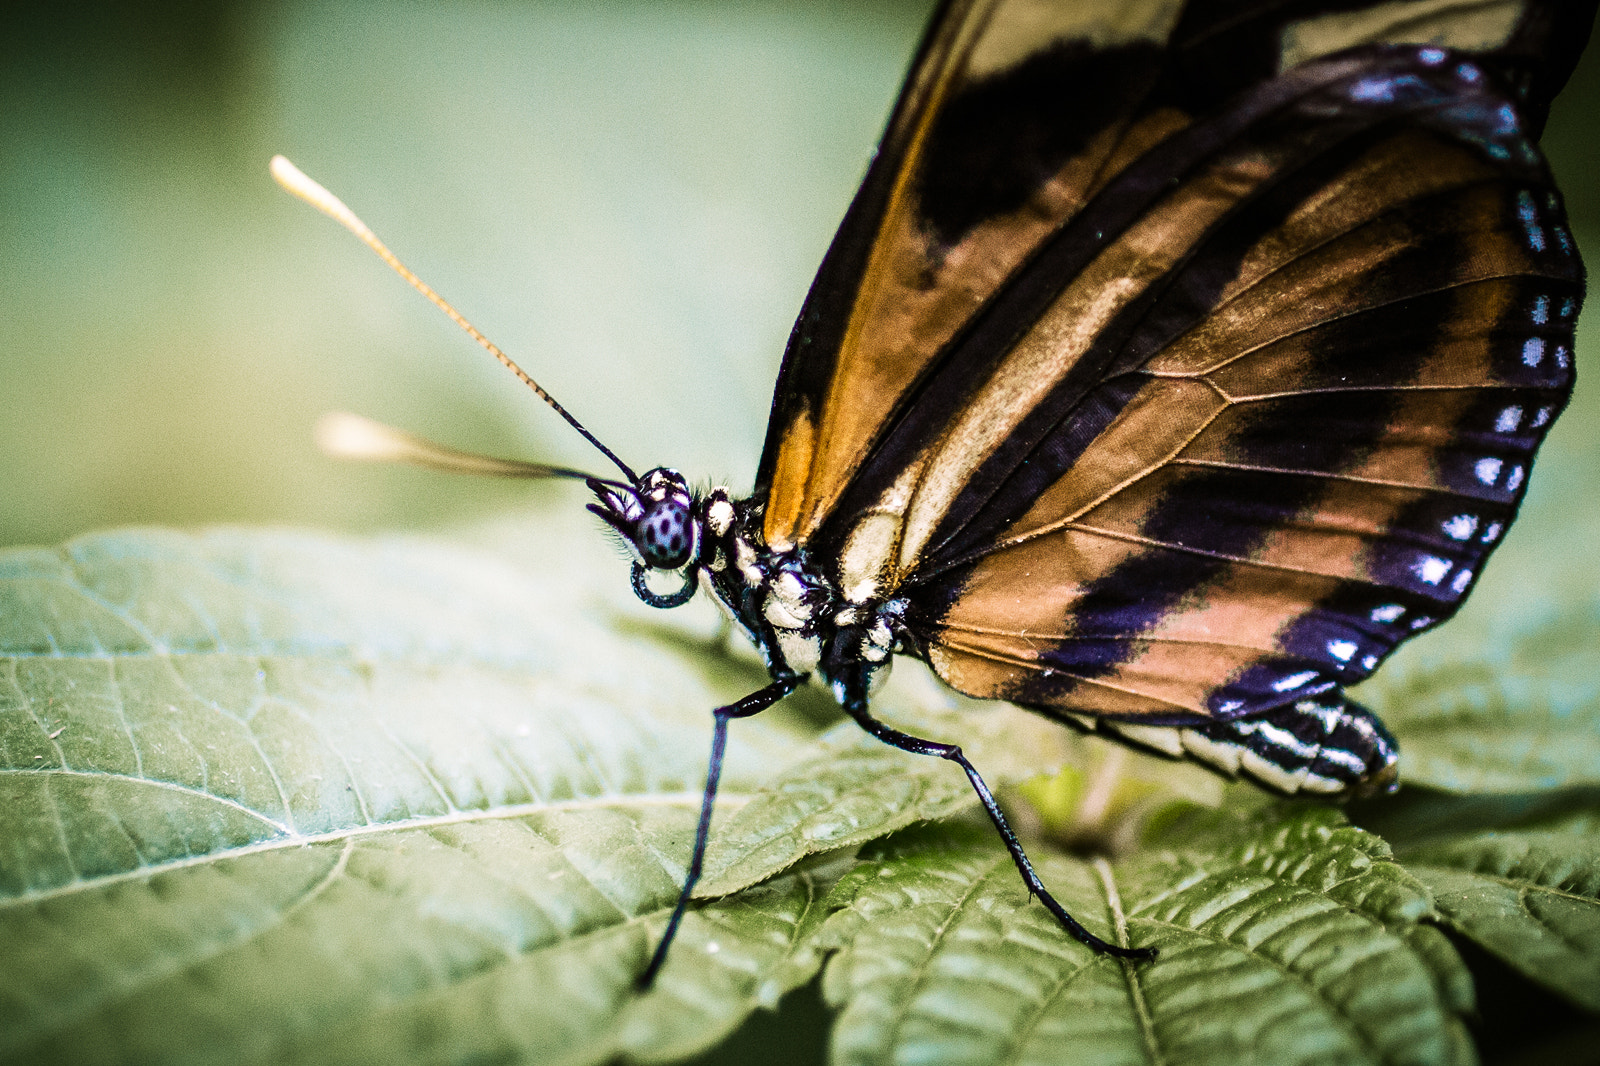 Photograph butterfly by Donato Romagnuolo on 500px